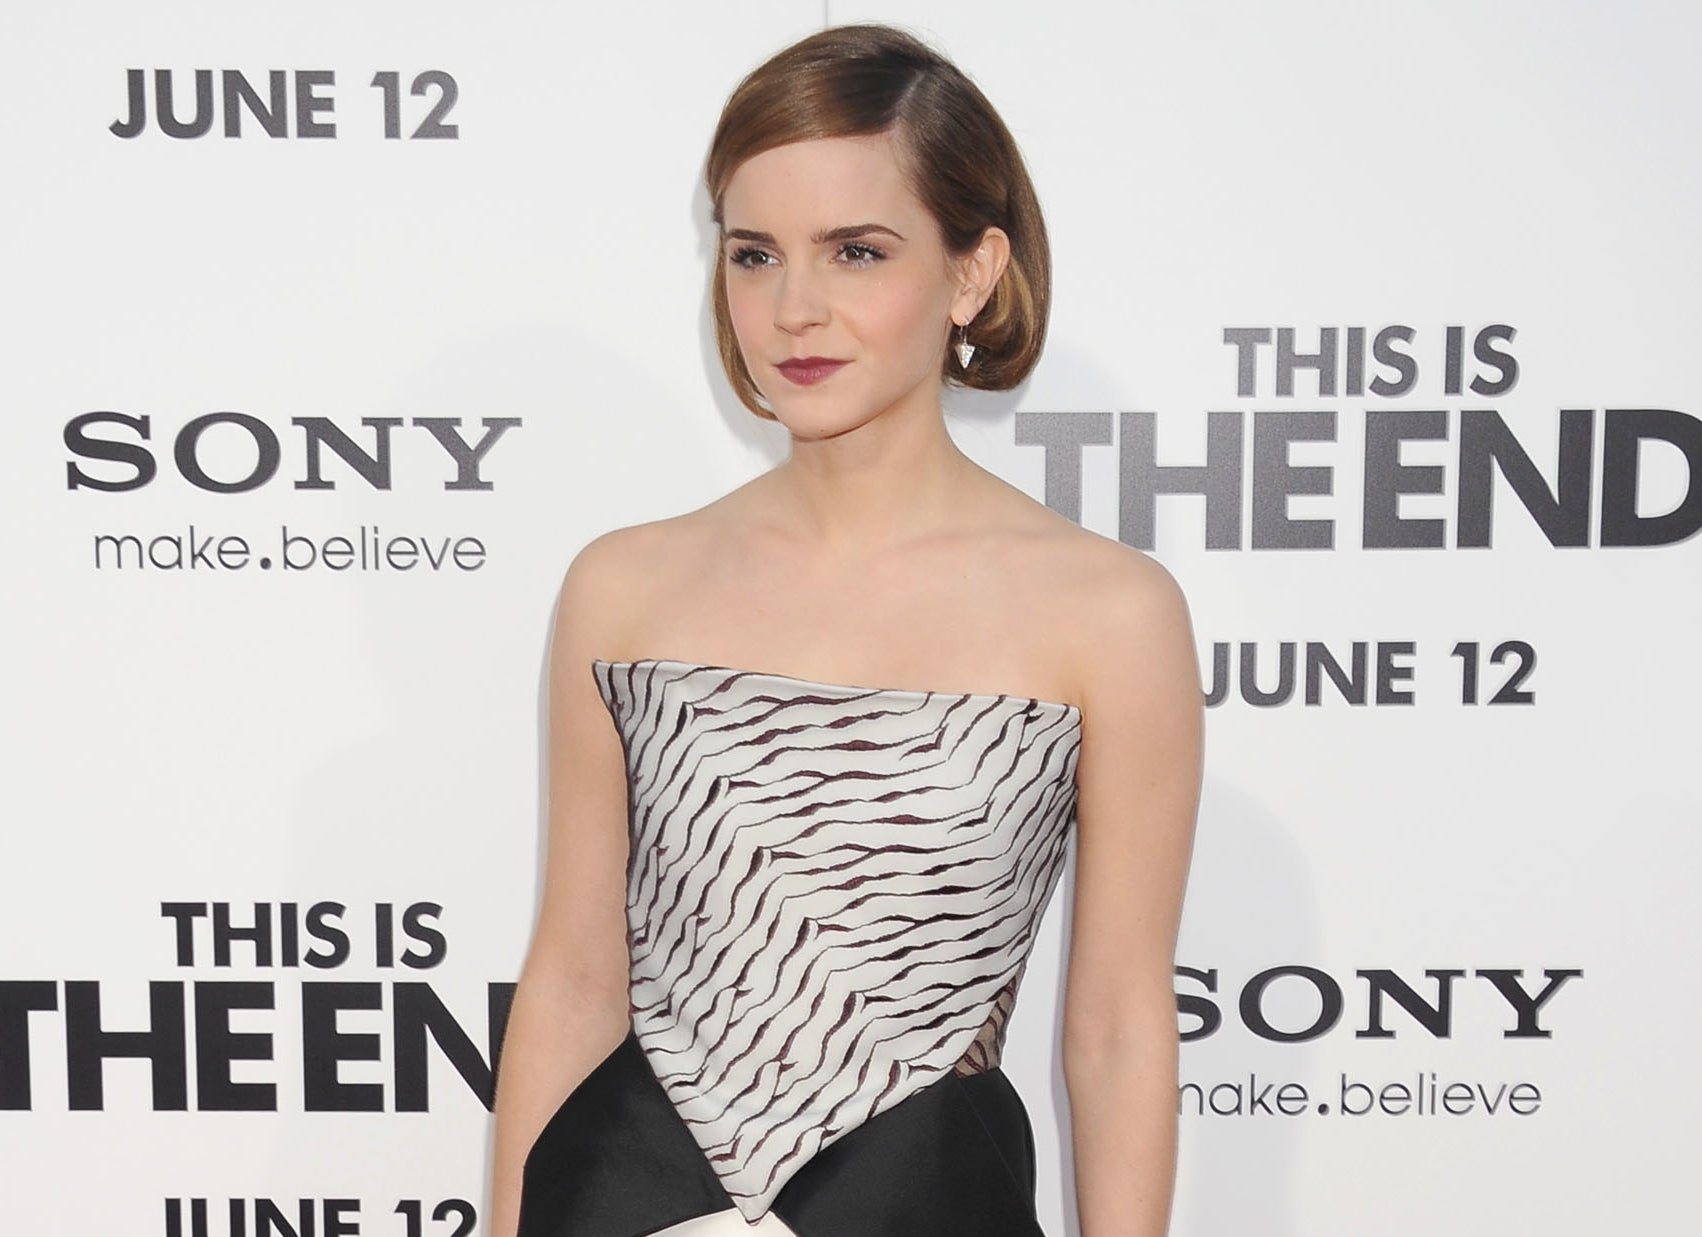 Emma poses on the red carpet at the premiere